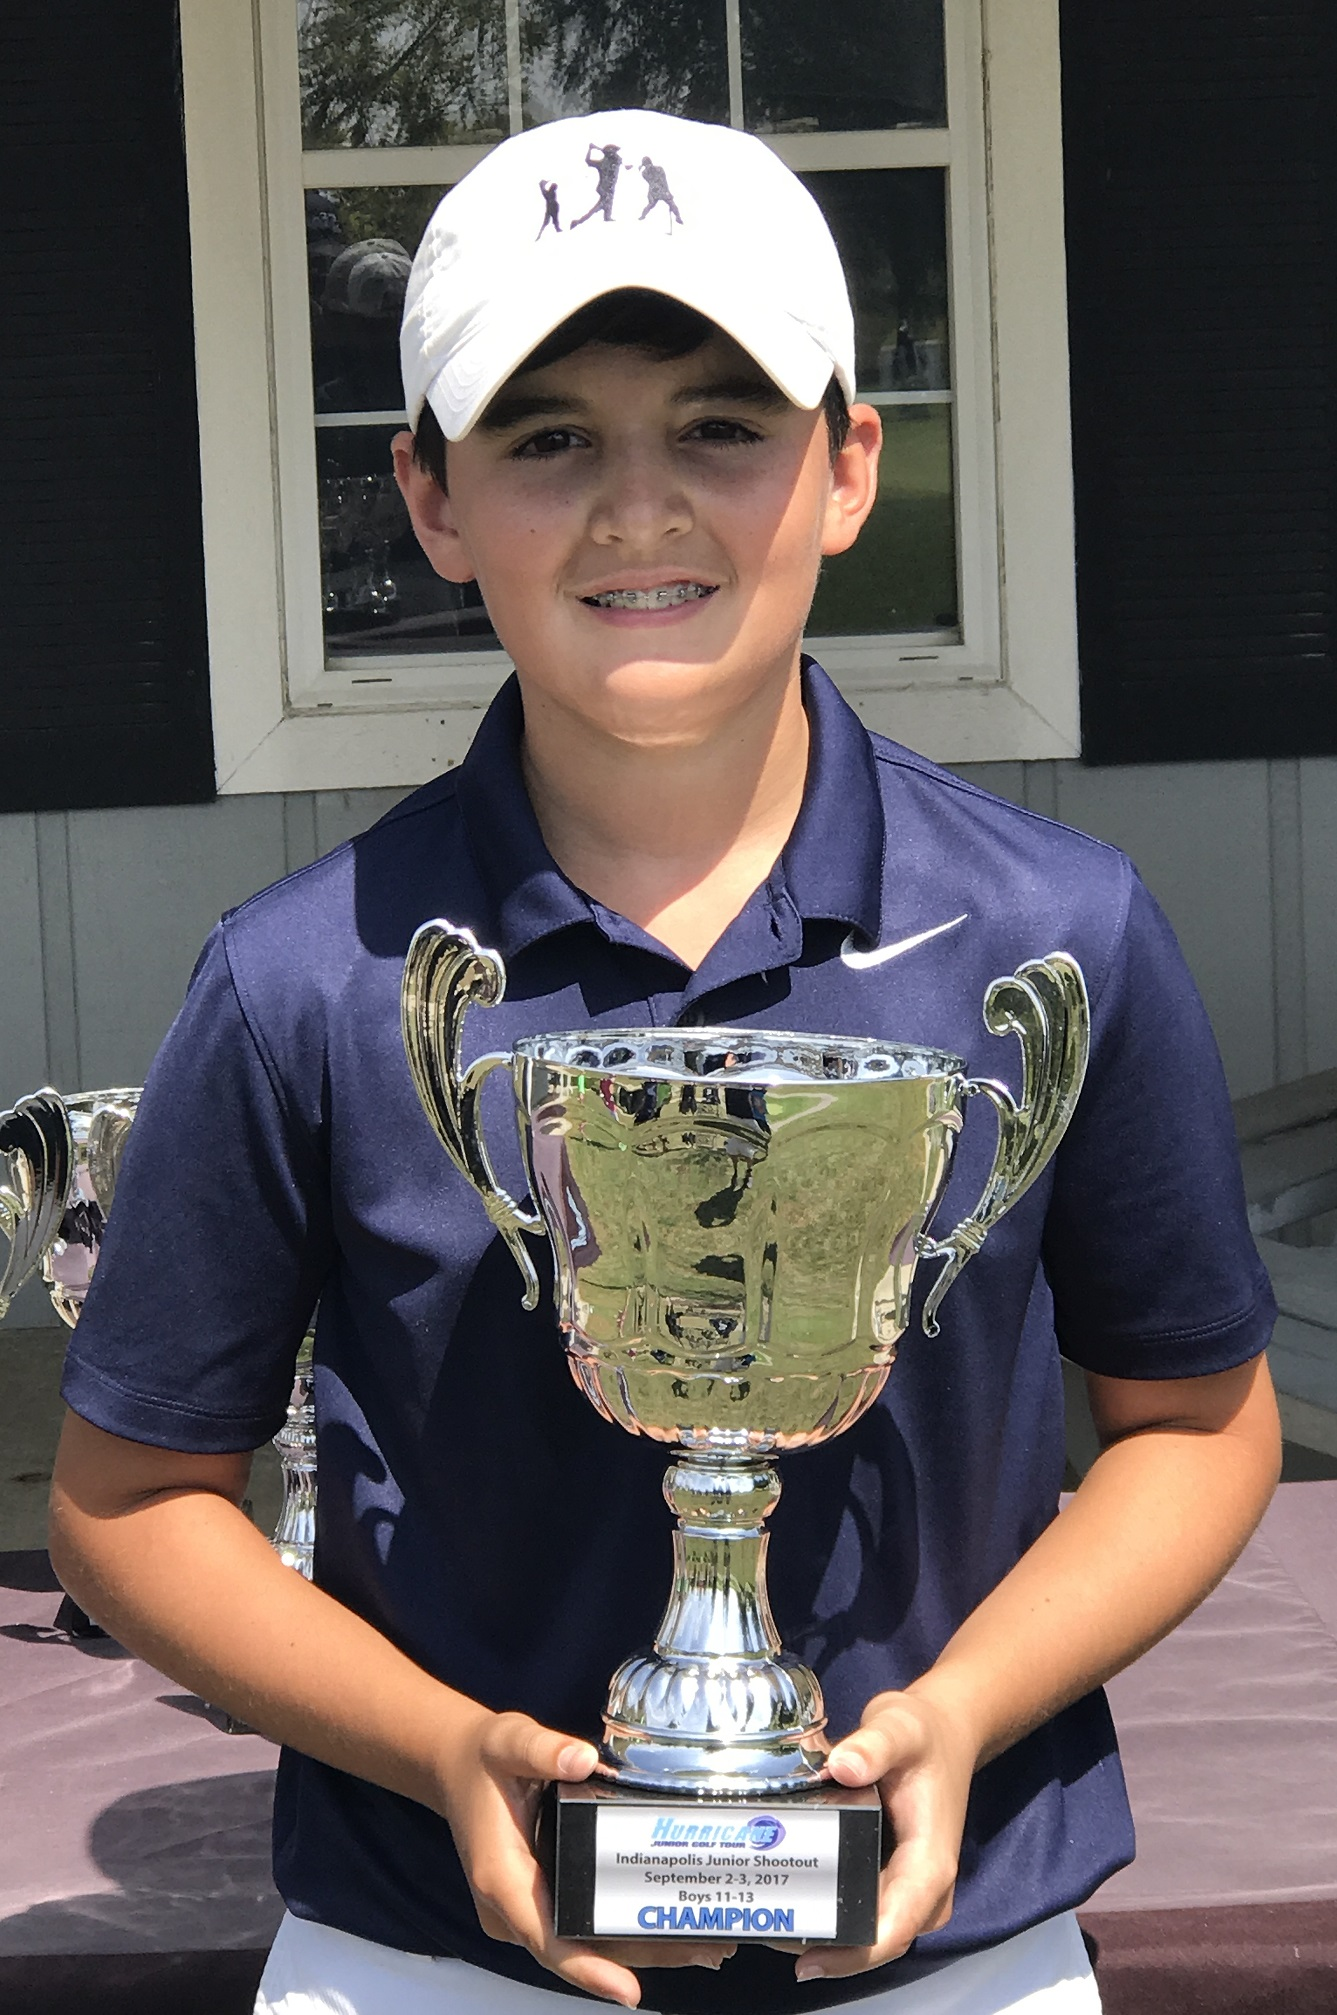 Indianapolis Junior Shootout at The Legends Golf Club